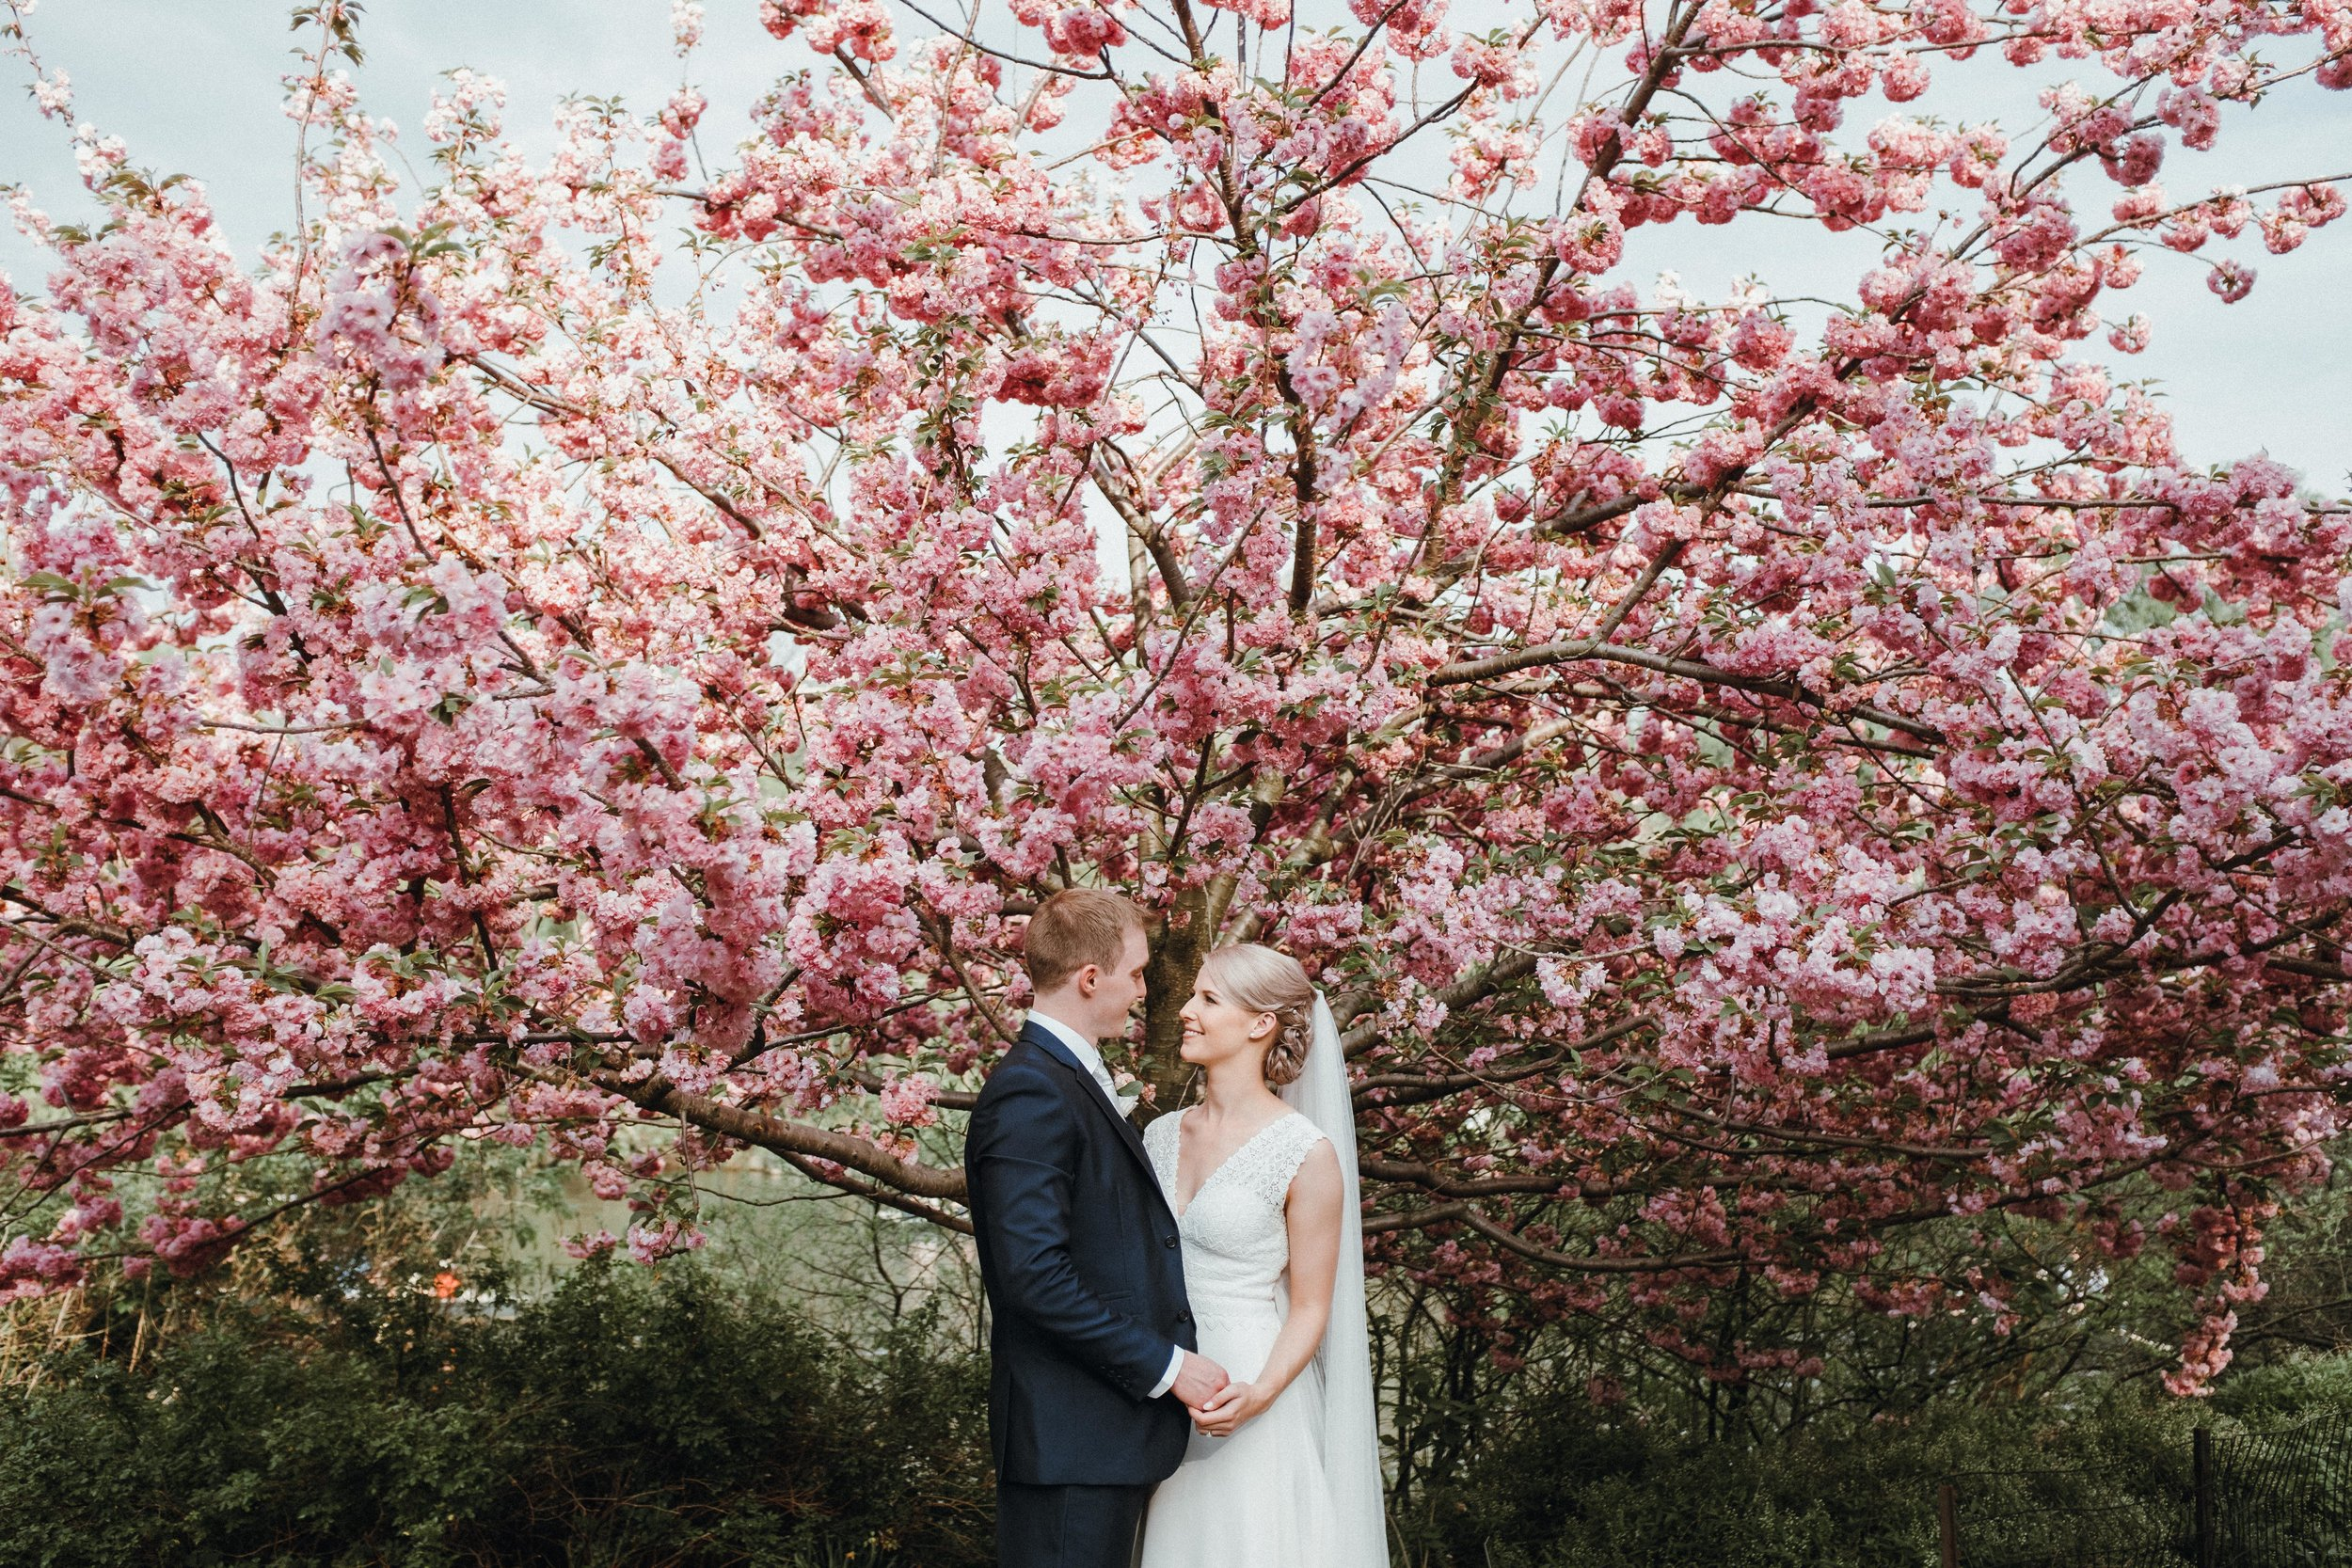 Bride and groom under blossom in Central Park New York